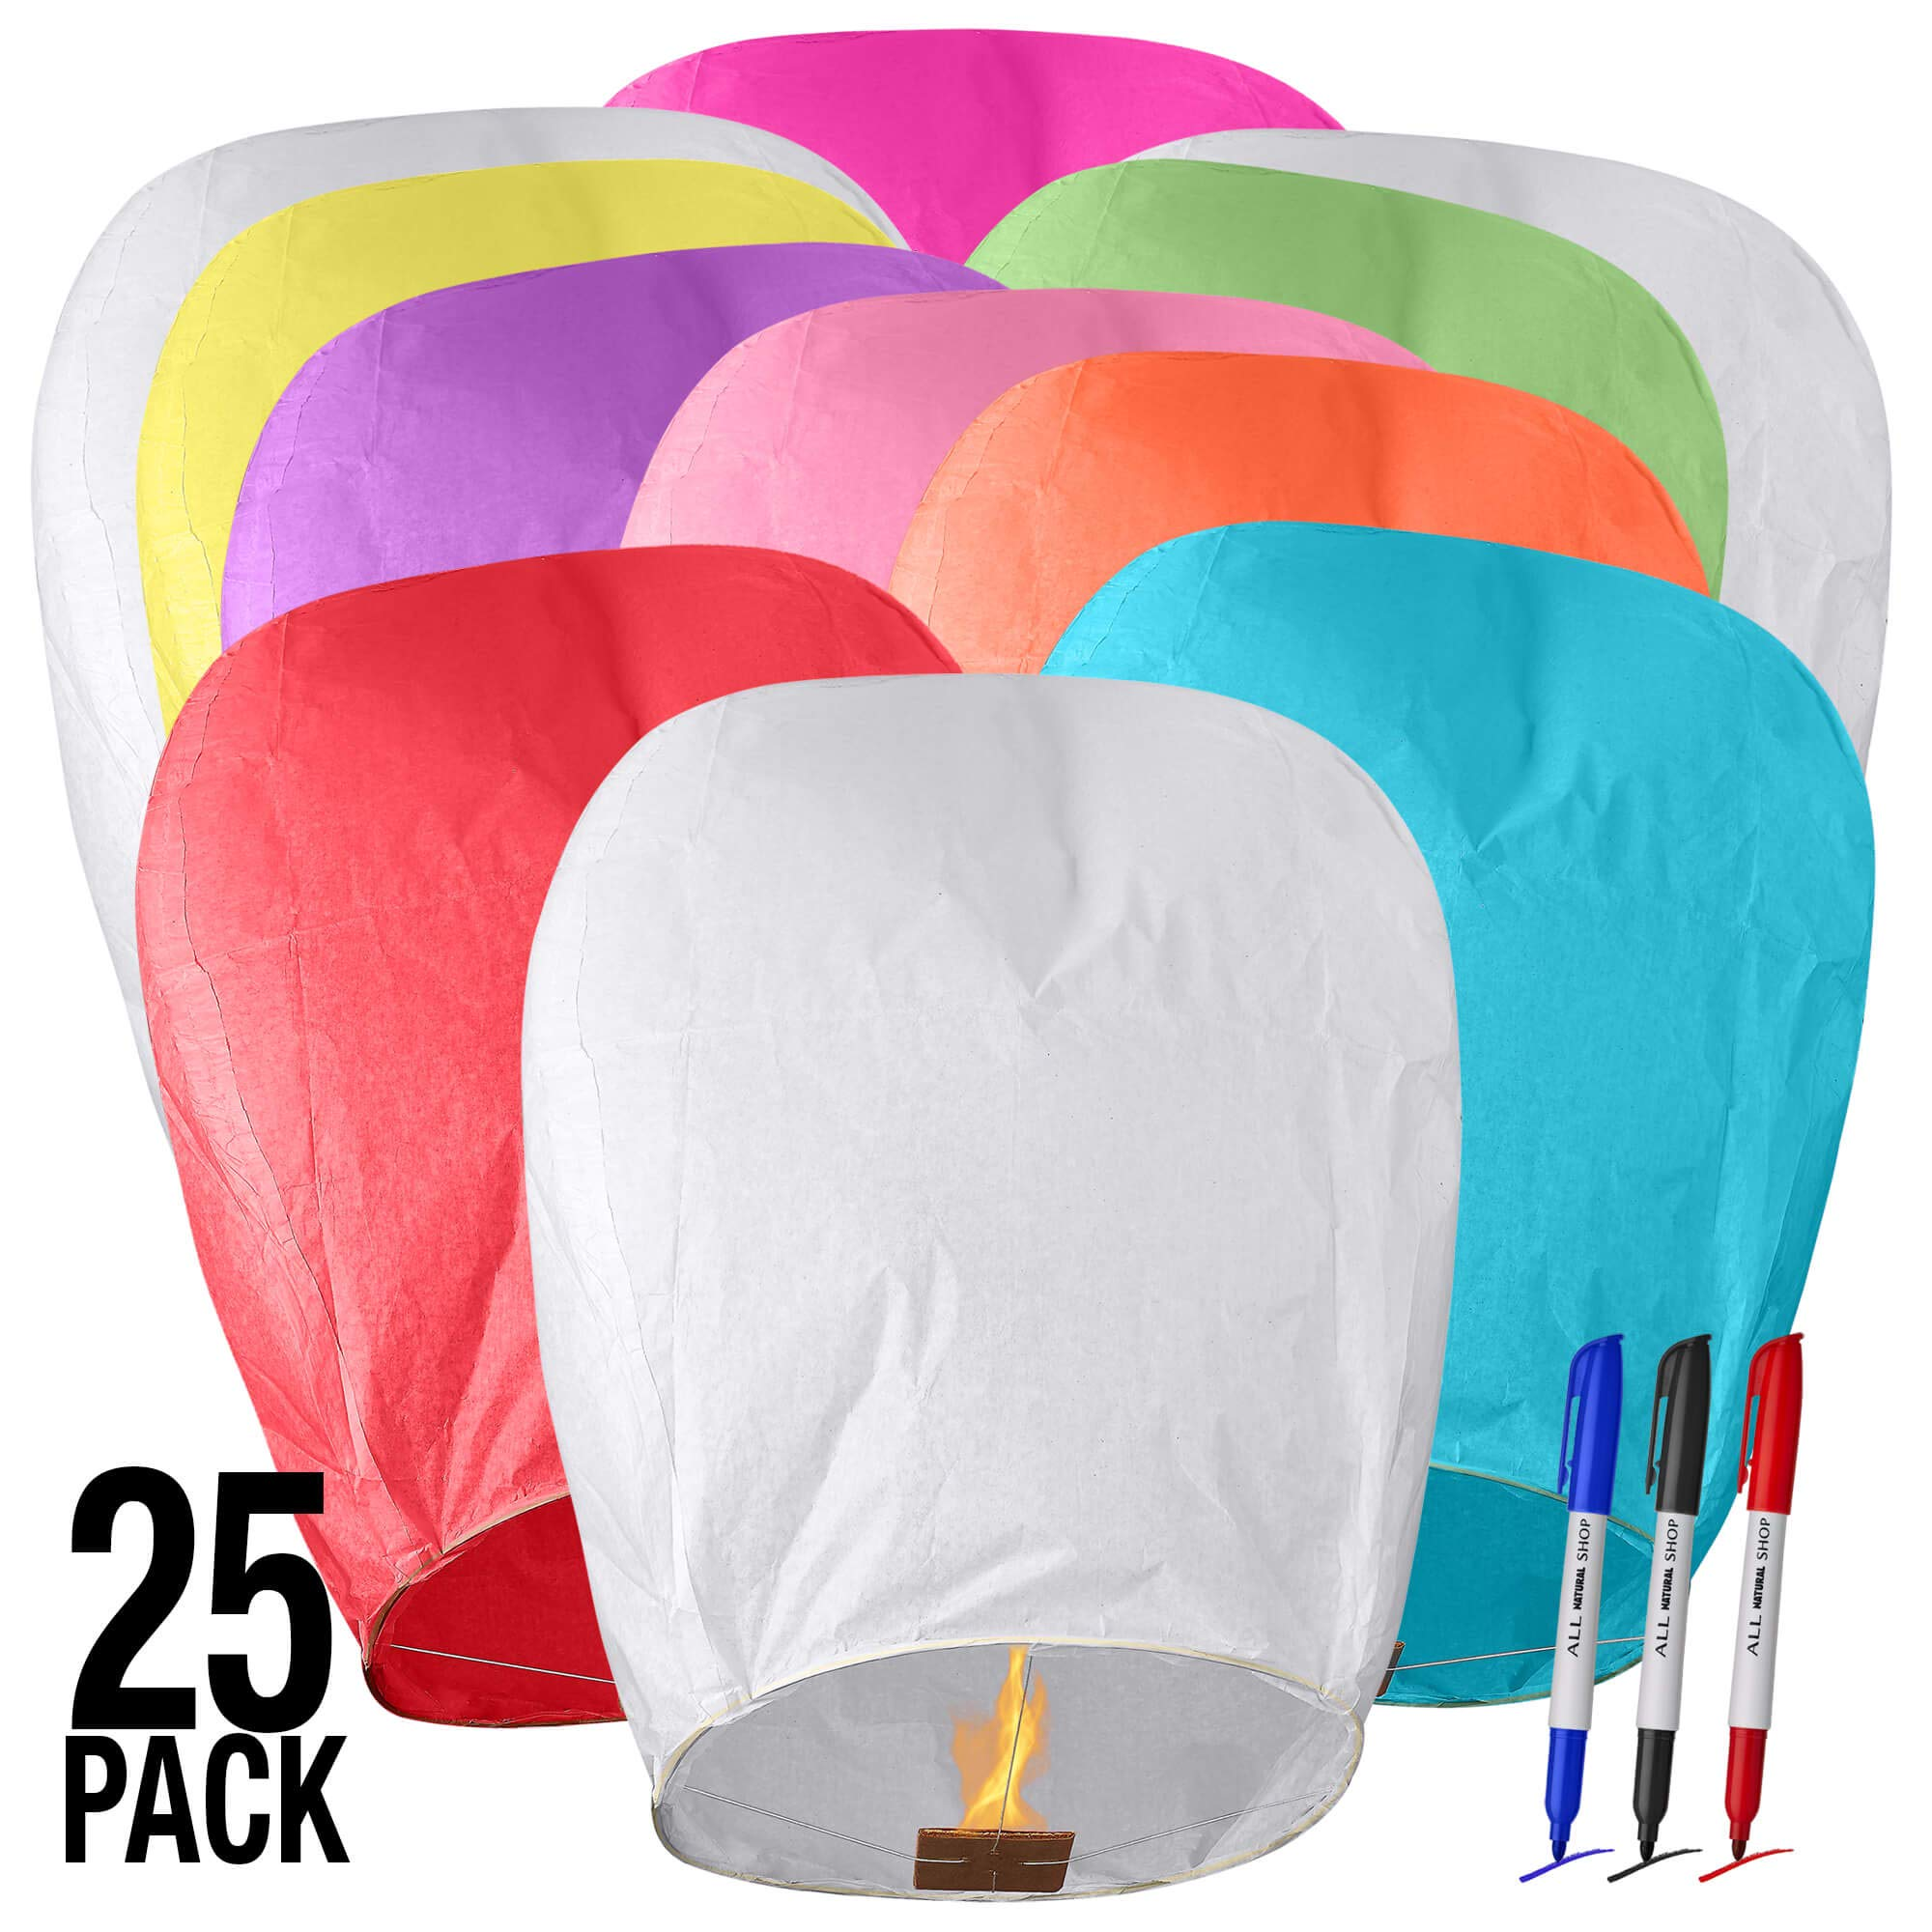 All Natural Shop 25 Pack Chinese Sky Lanterns - Color, Eco Friendly, 100% Biodegradable. Wire-Free Paper Japanese Prime Paper Sky Lantern To Release In Sky.